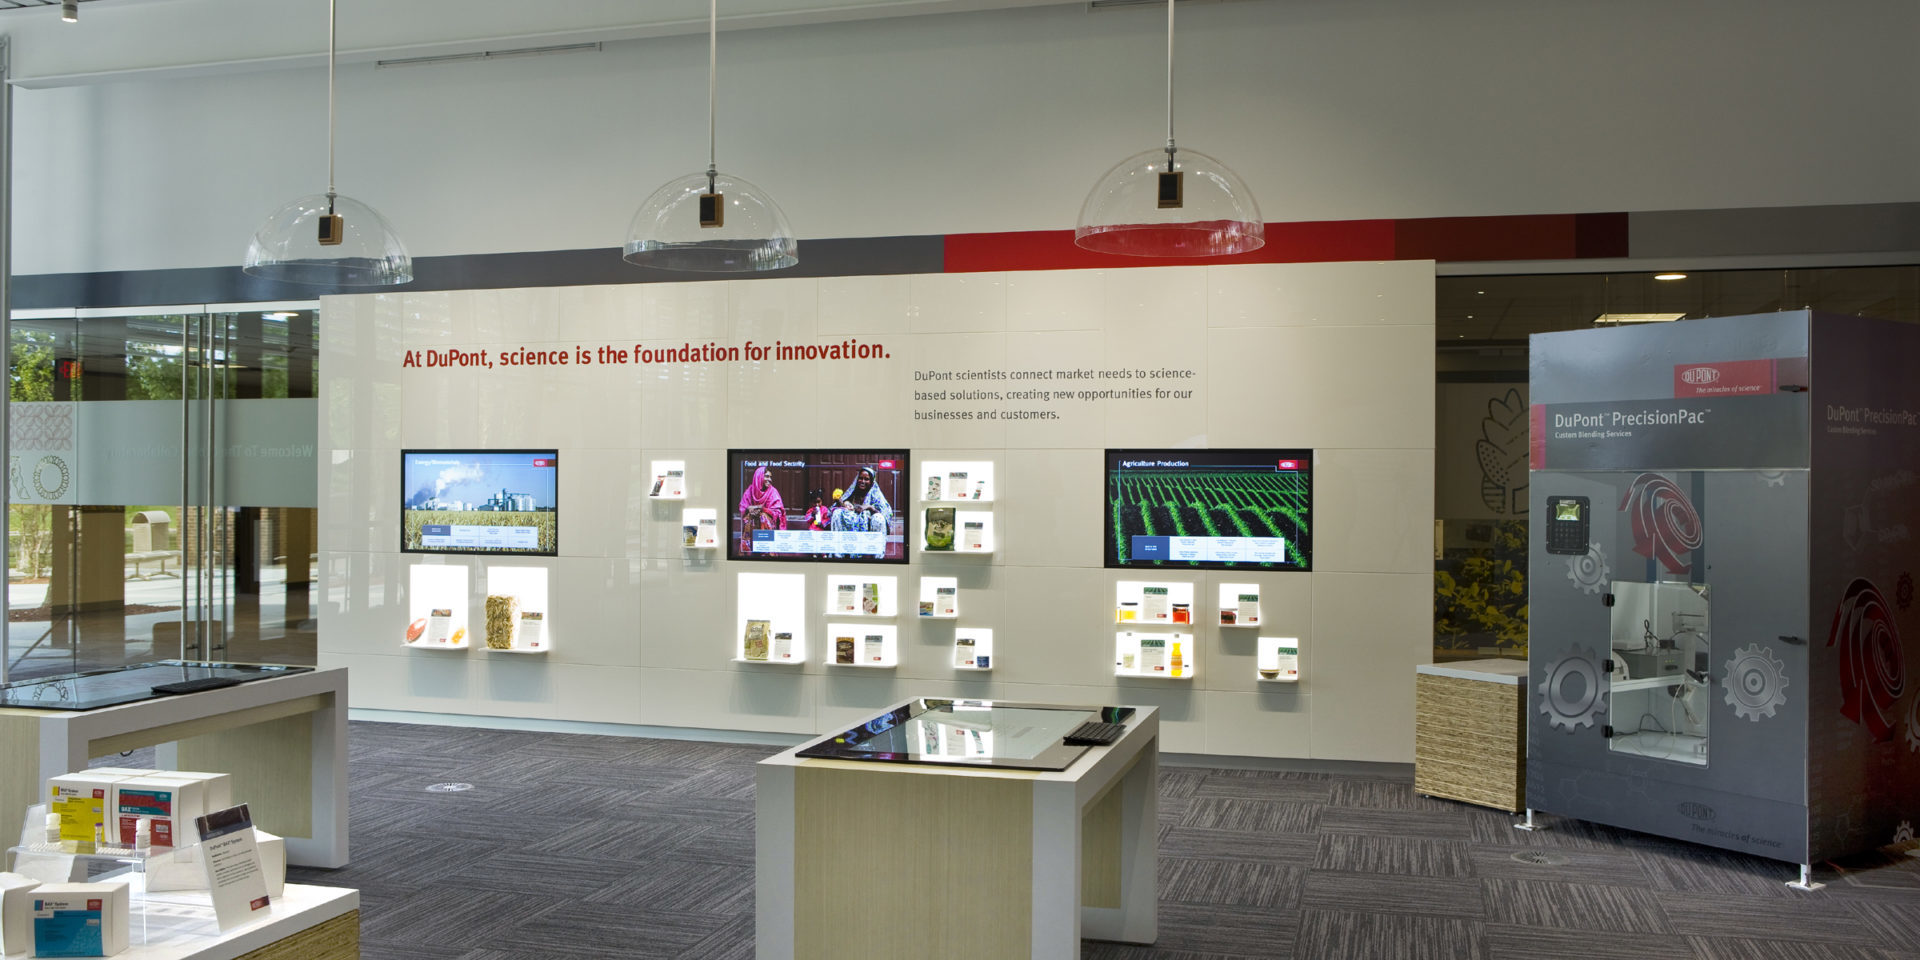 Johnston County Innovation Center Touch Screen Interactives